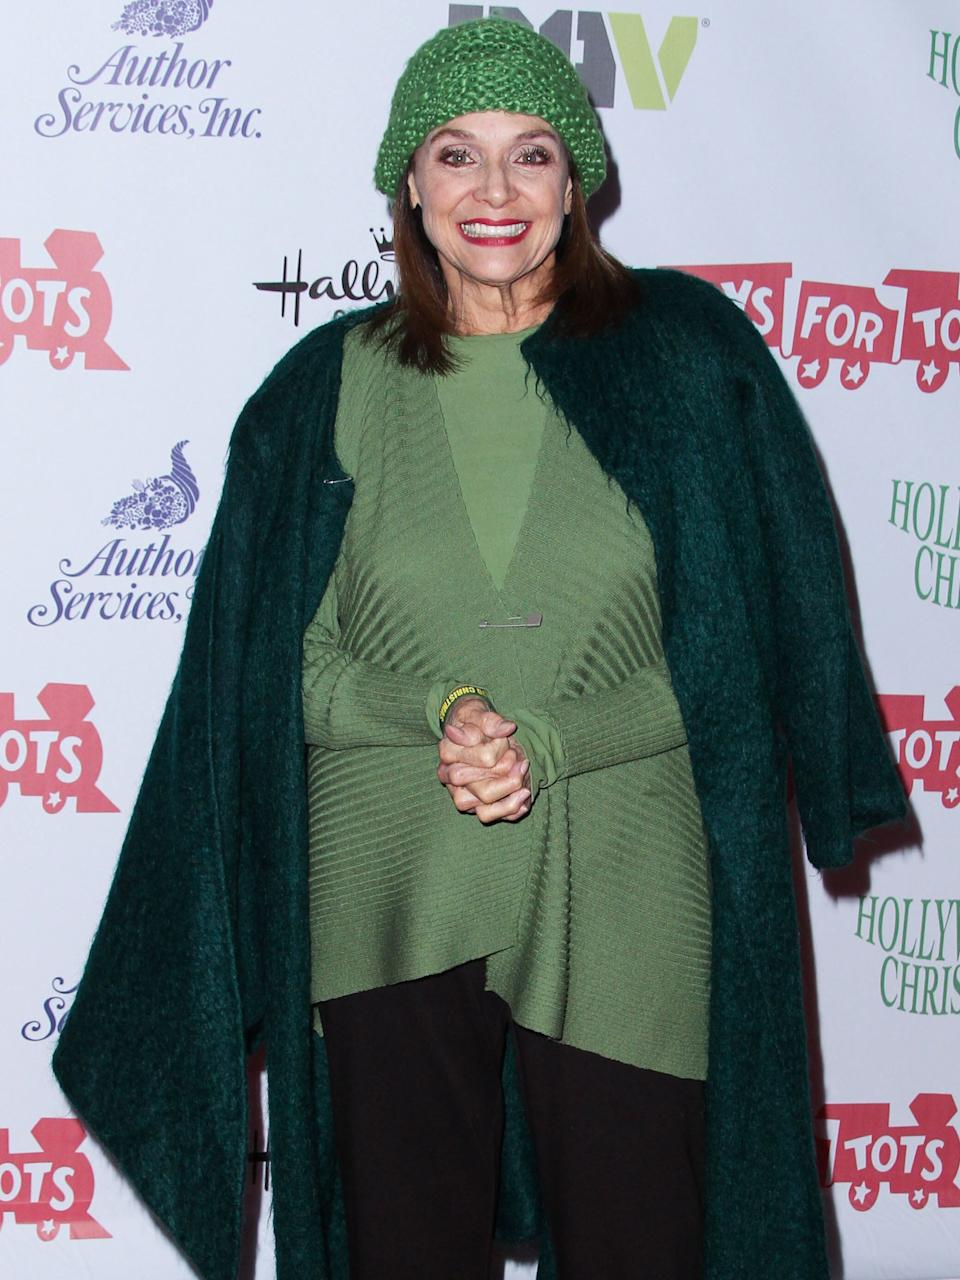 <strong>Valerie Harper (1939-2019)</strong><br />Best known for her role as Rhoda Morgenstern on The Mary Tyler Moore Show and its spinoff Rhoda in the 1970s, Valerie was diagnosed with leptomeningeal carcinomatosis, a rare and incurable form of brain cancer, in January 2013.